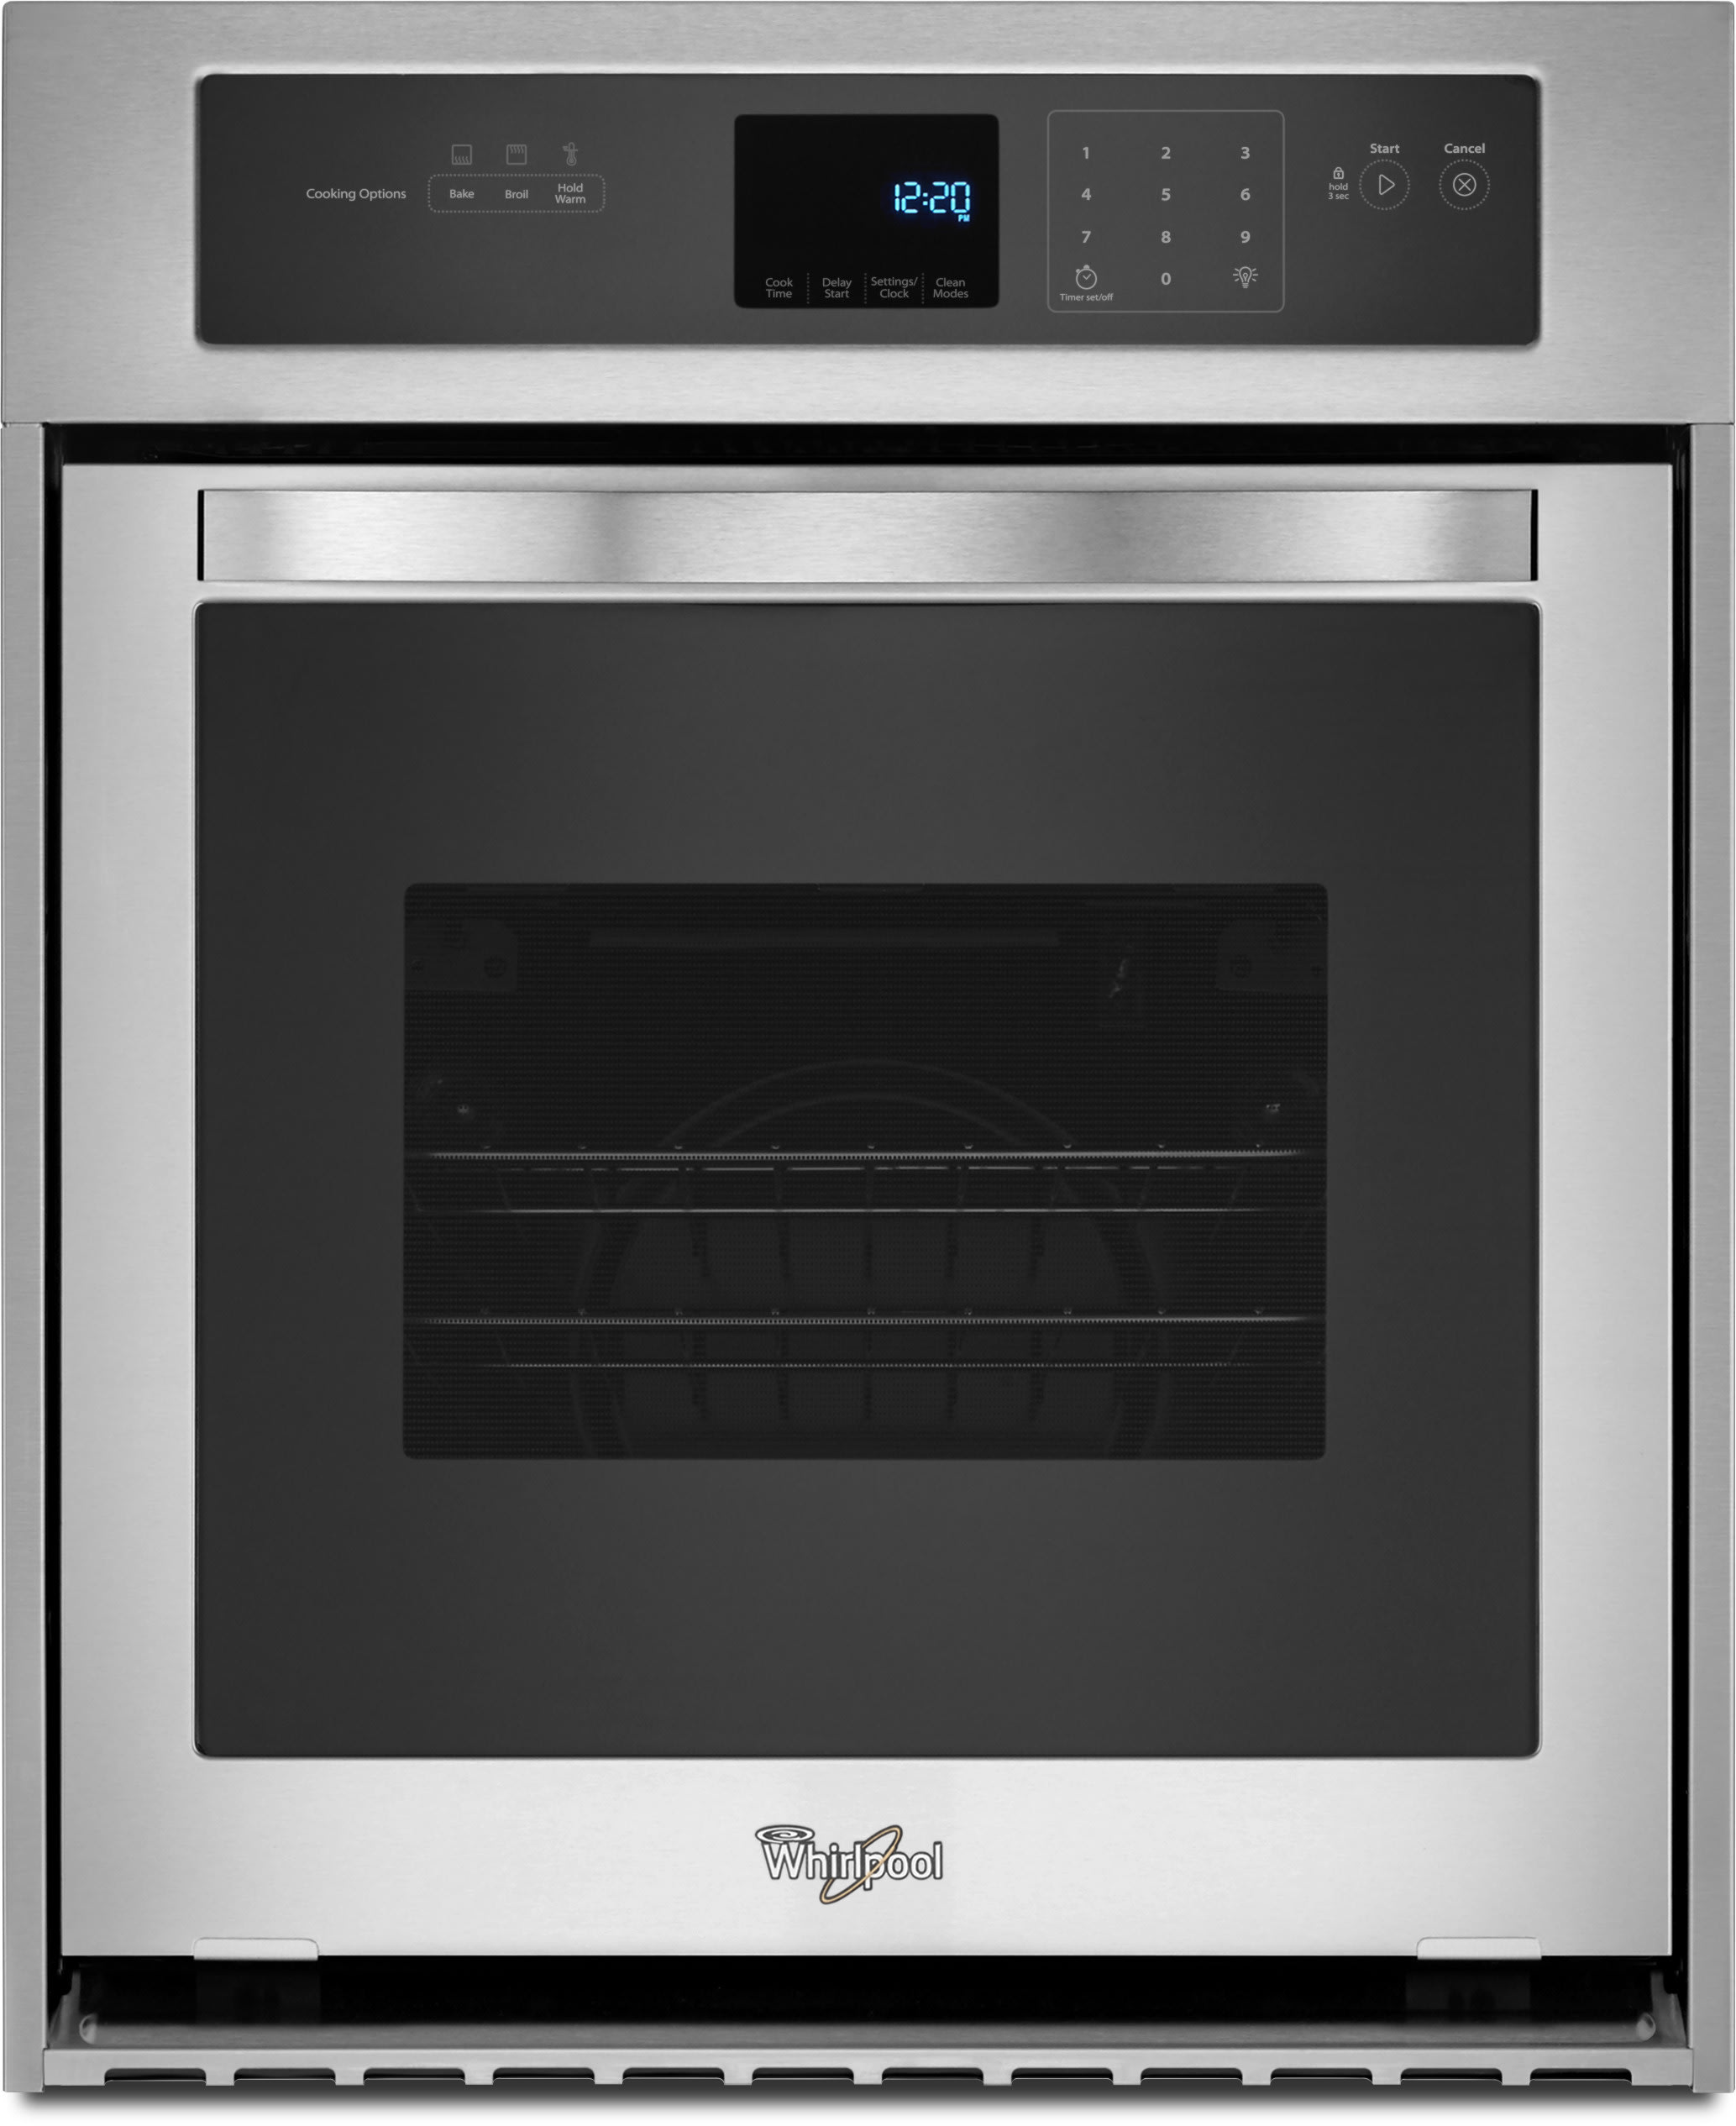 Whirlpool Rcs2012rs 21 Inch Electric Cooktop With 2 Coil